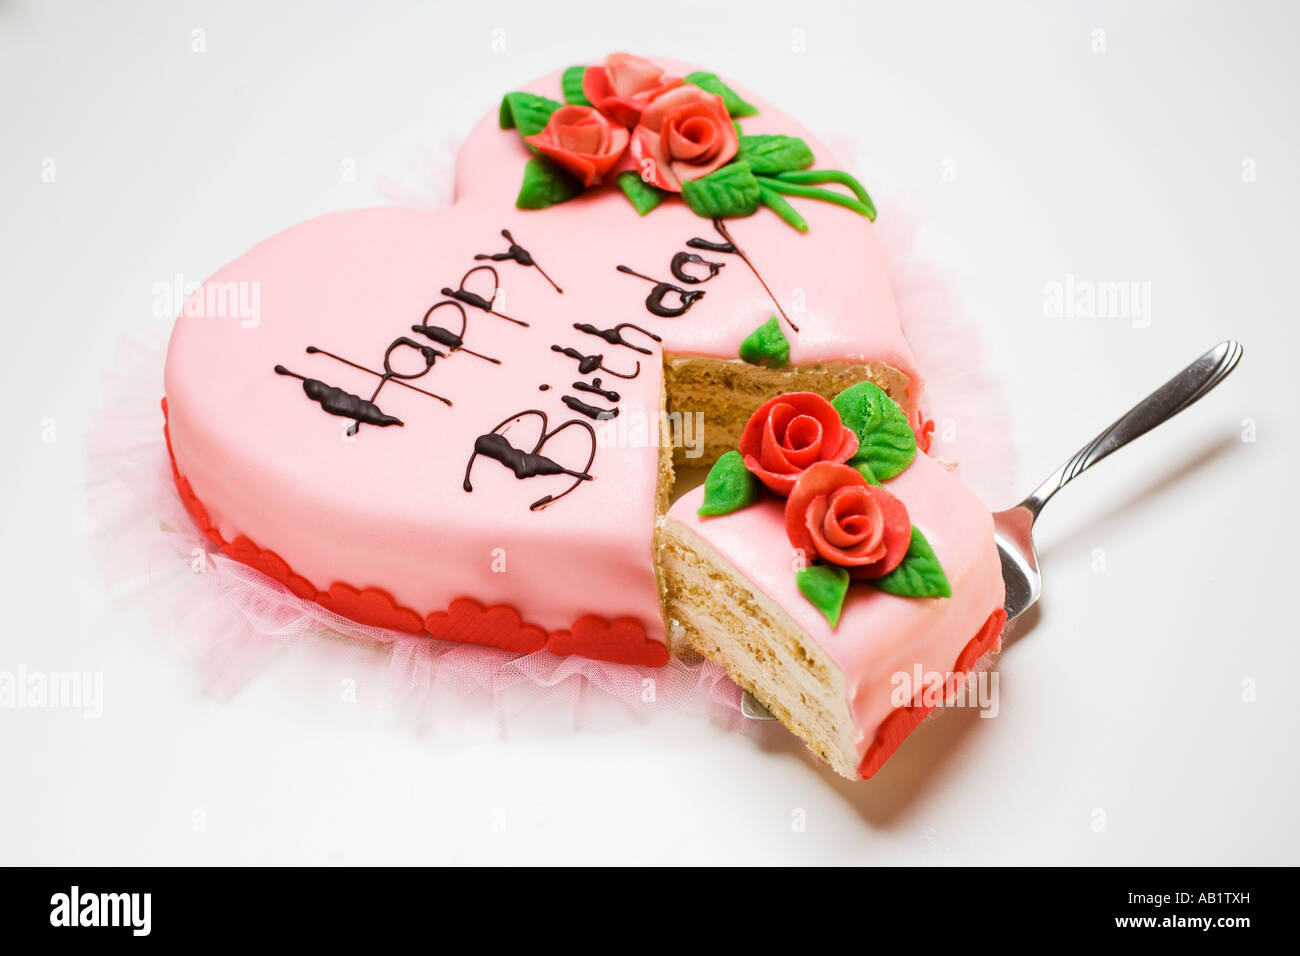 Pink Heart Shaped Birthday Cake With Piece On Server Foodcollection